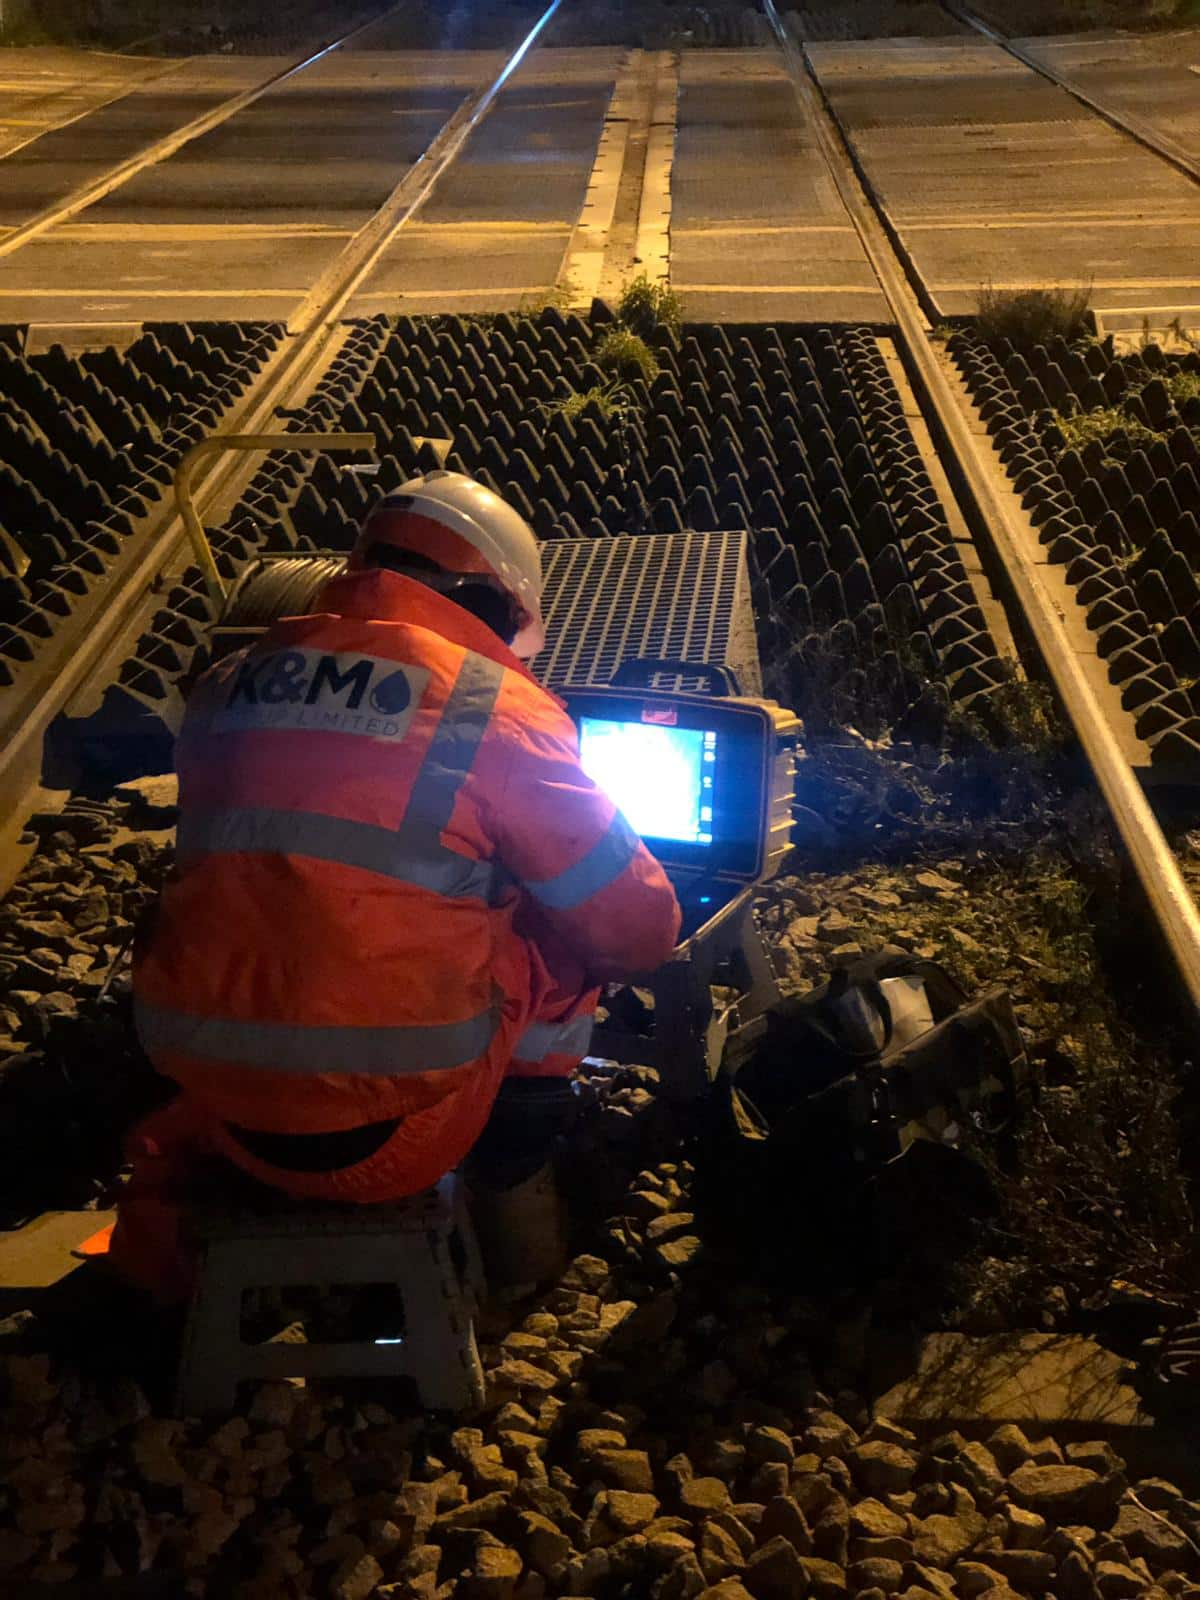 CCTV Pipeline Survey being carried out on the railway.